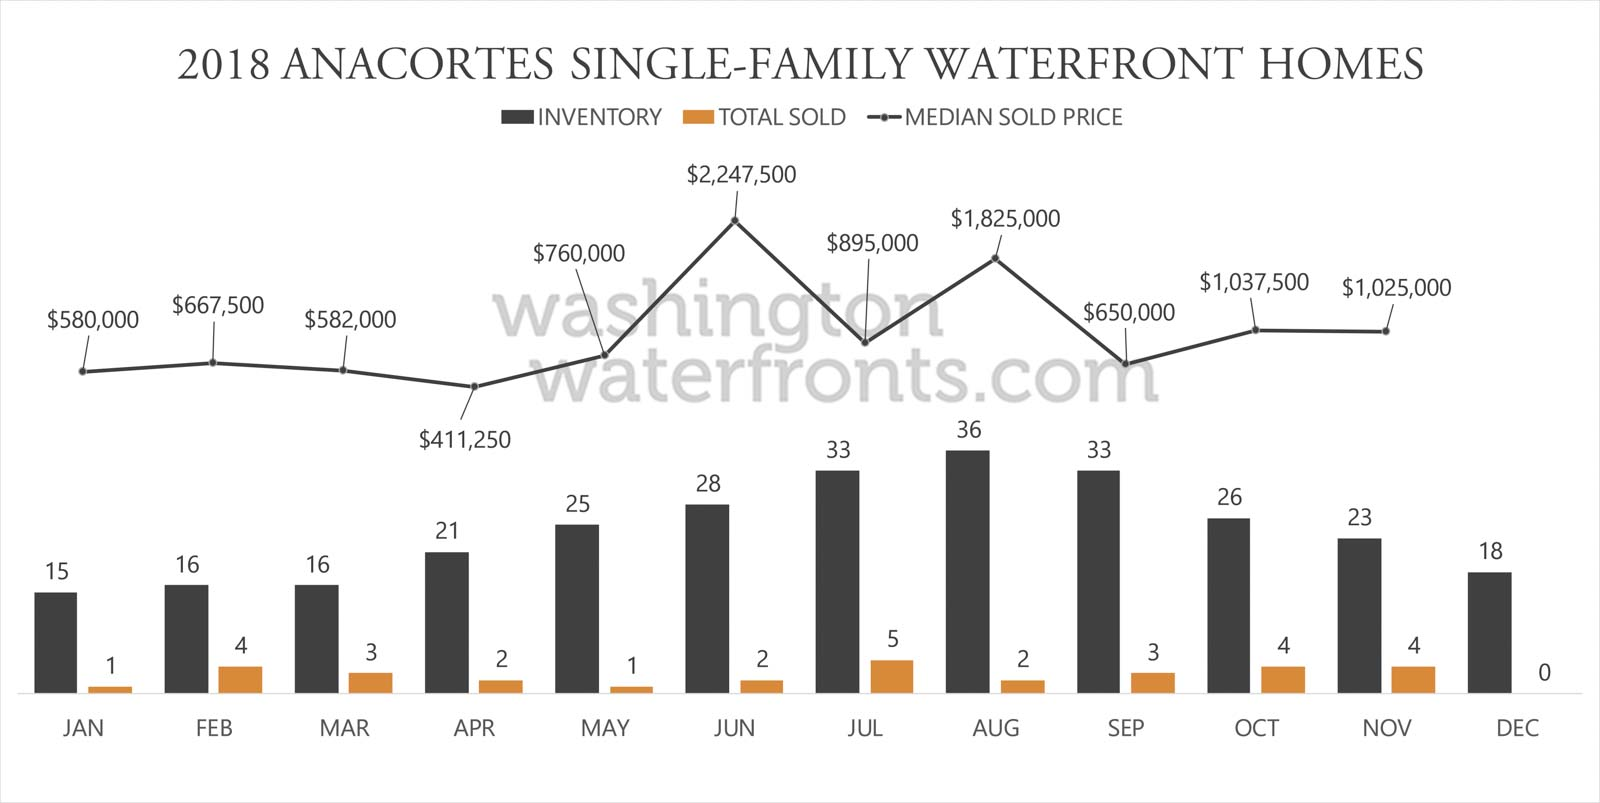 Anacortes Waterfront Inventory